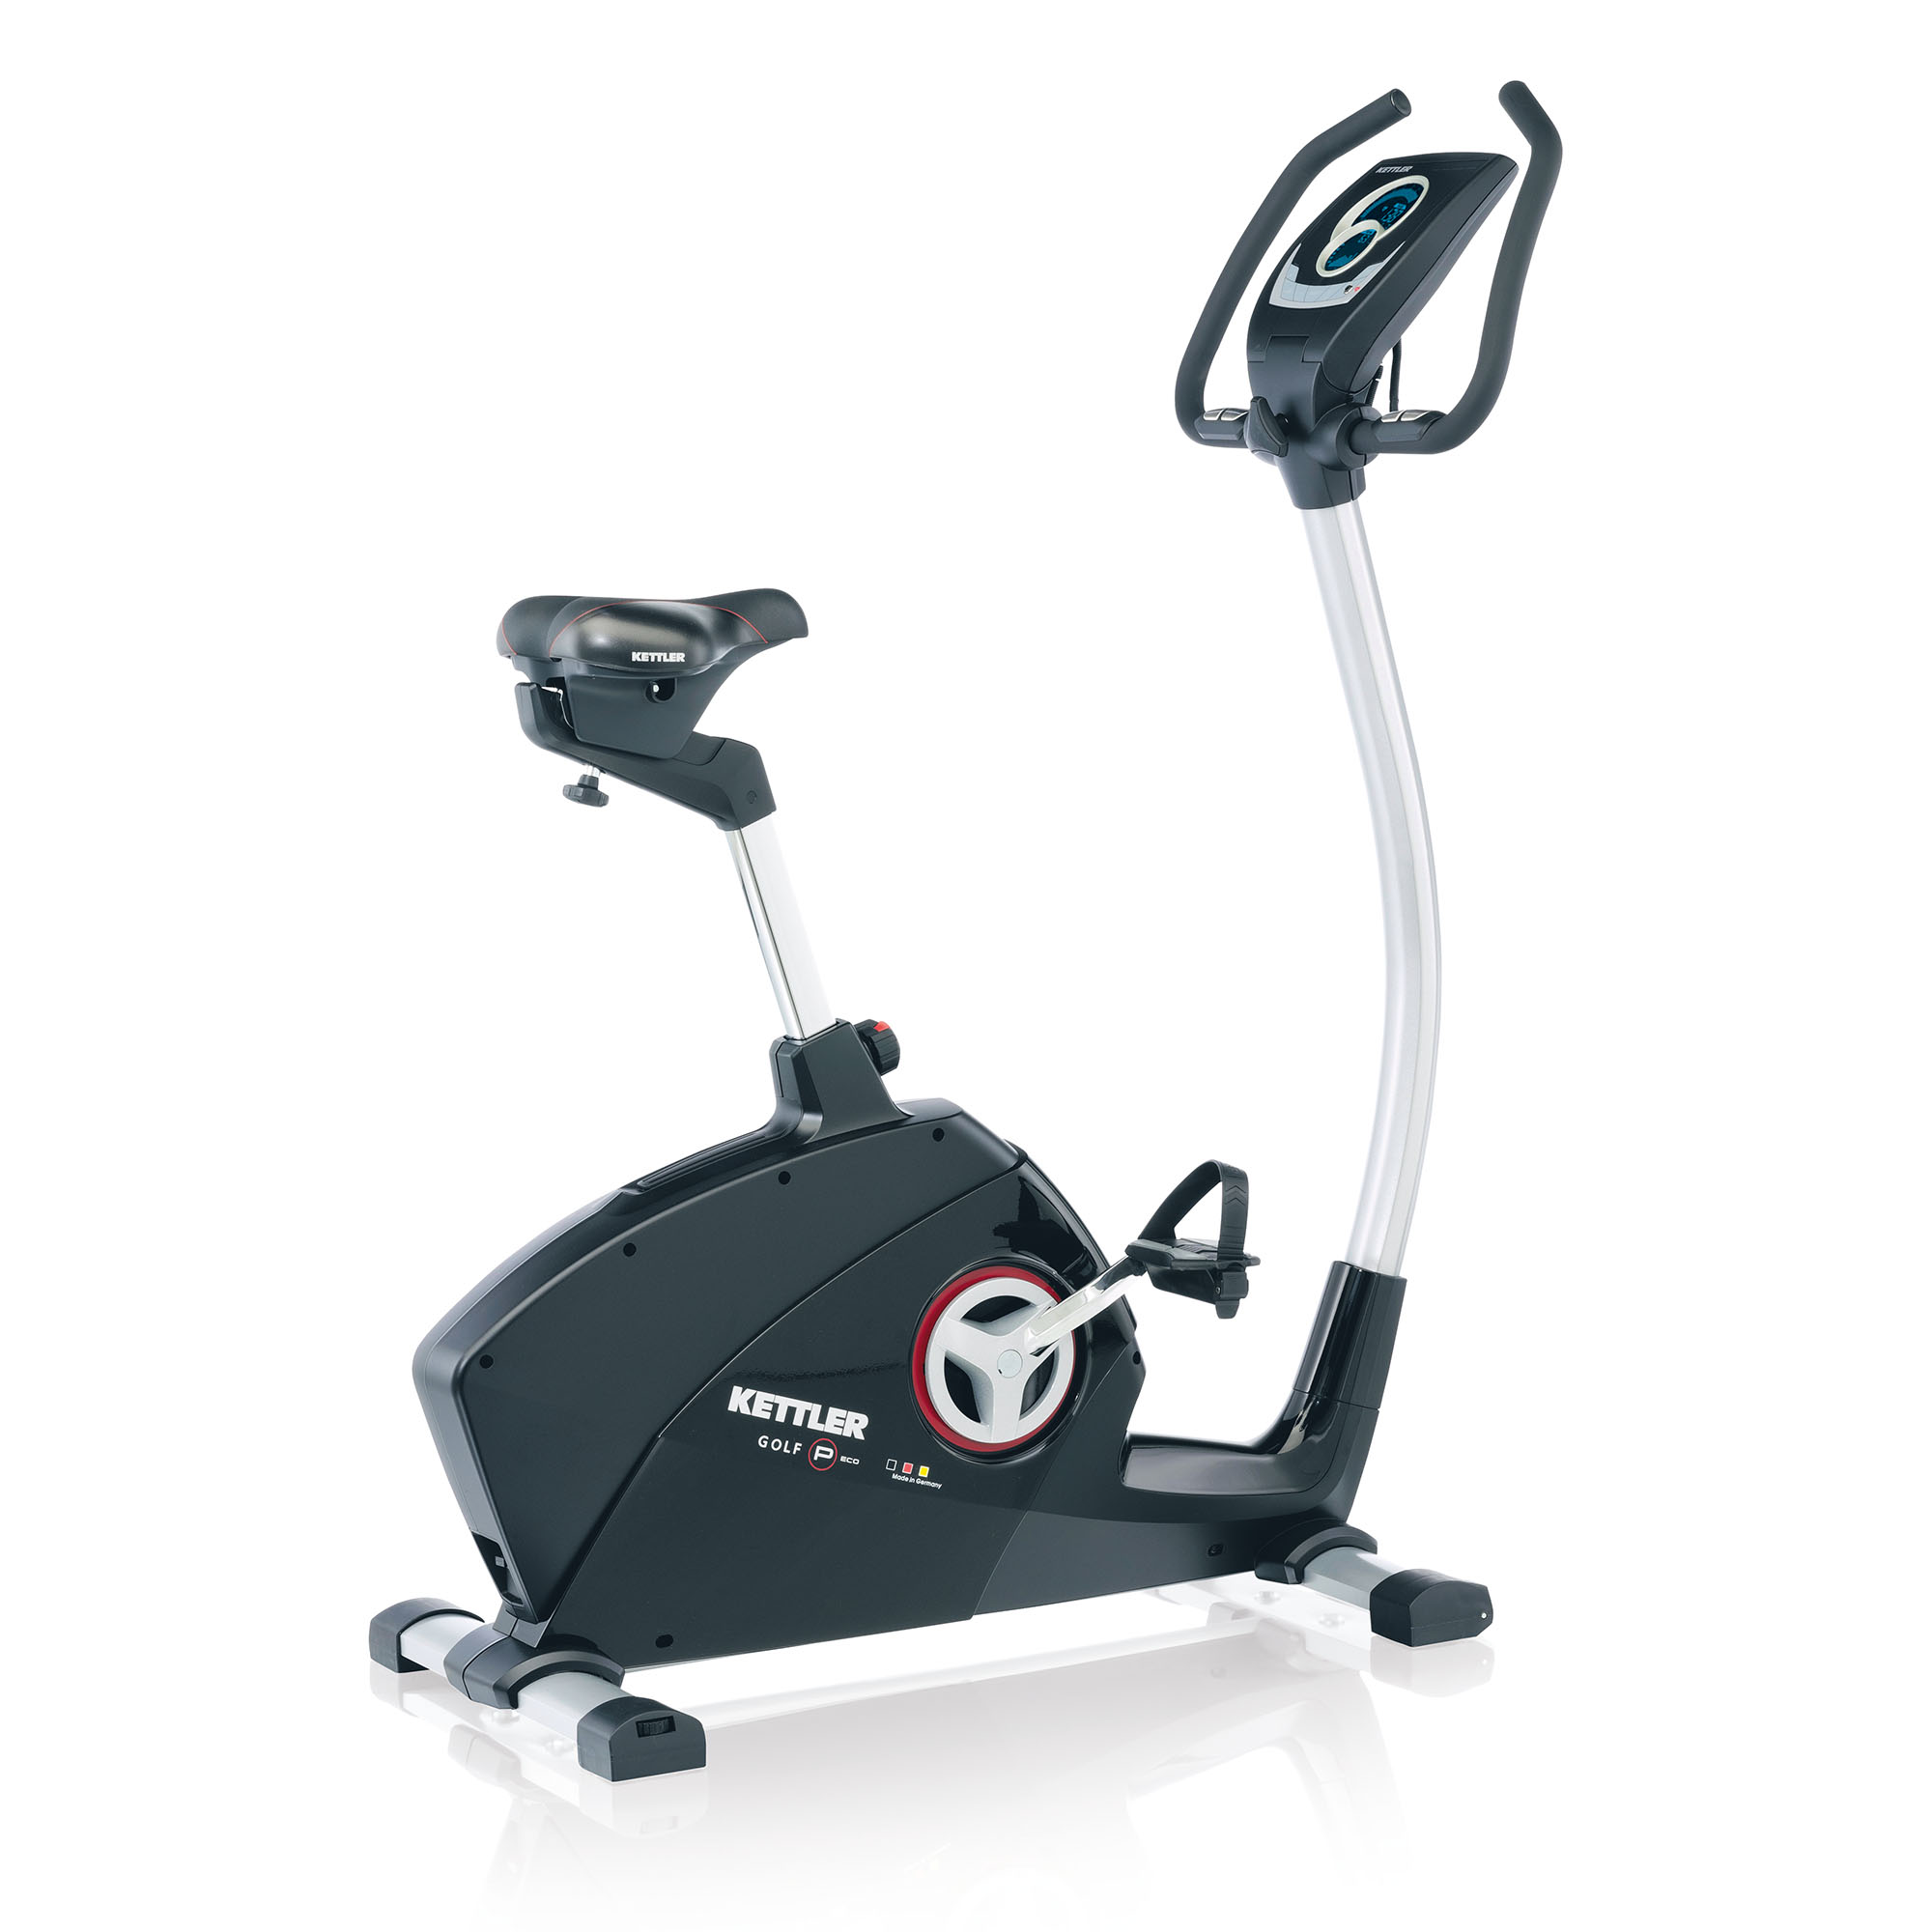 Kettler Golf P Eco Upright Exercise Bike